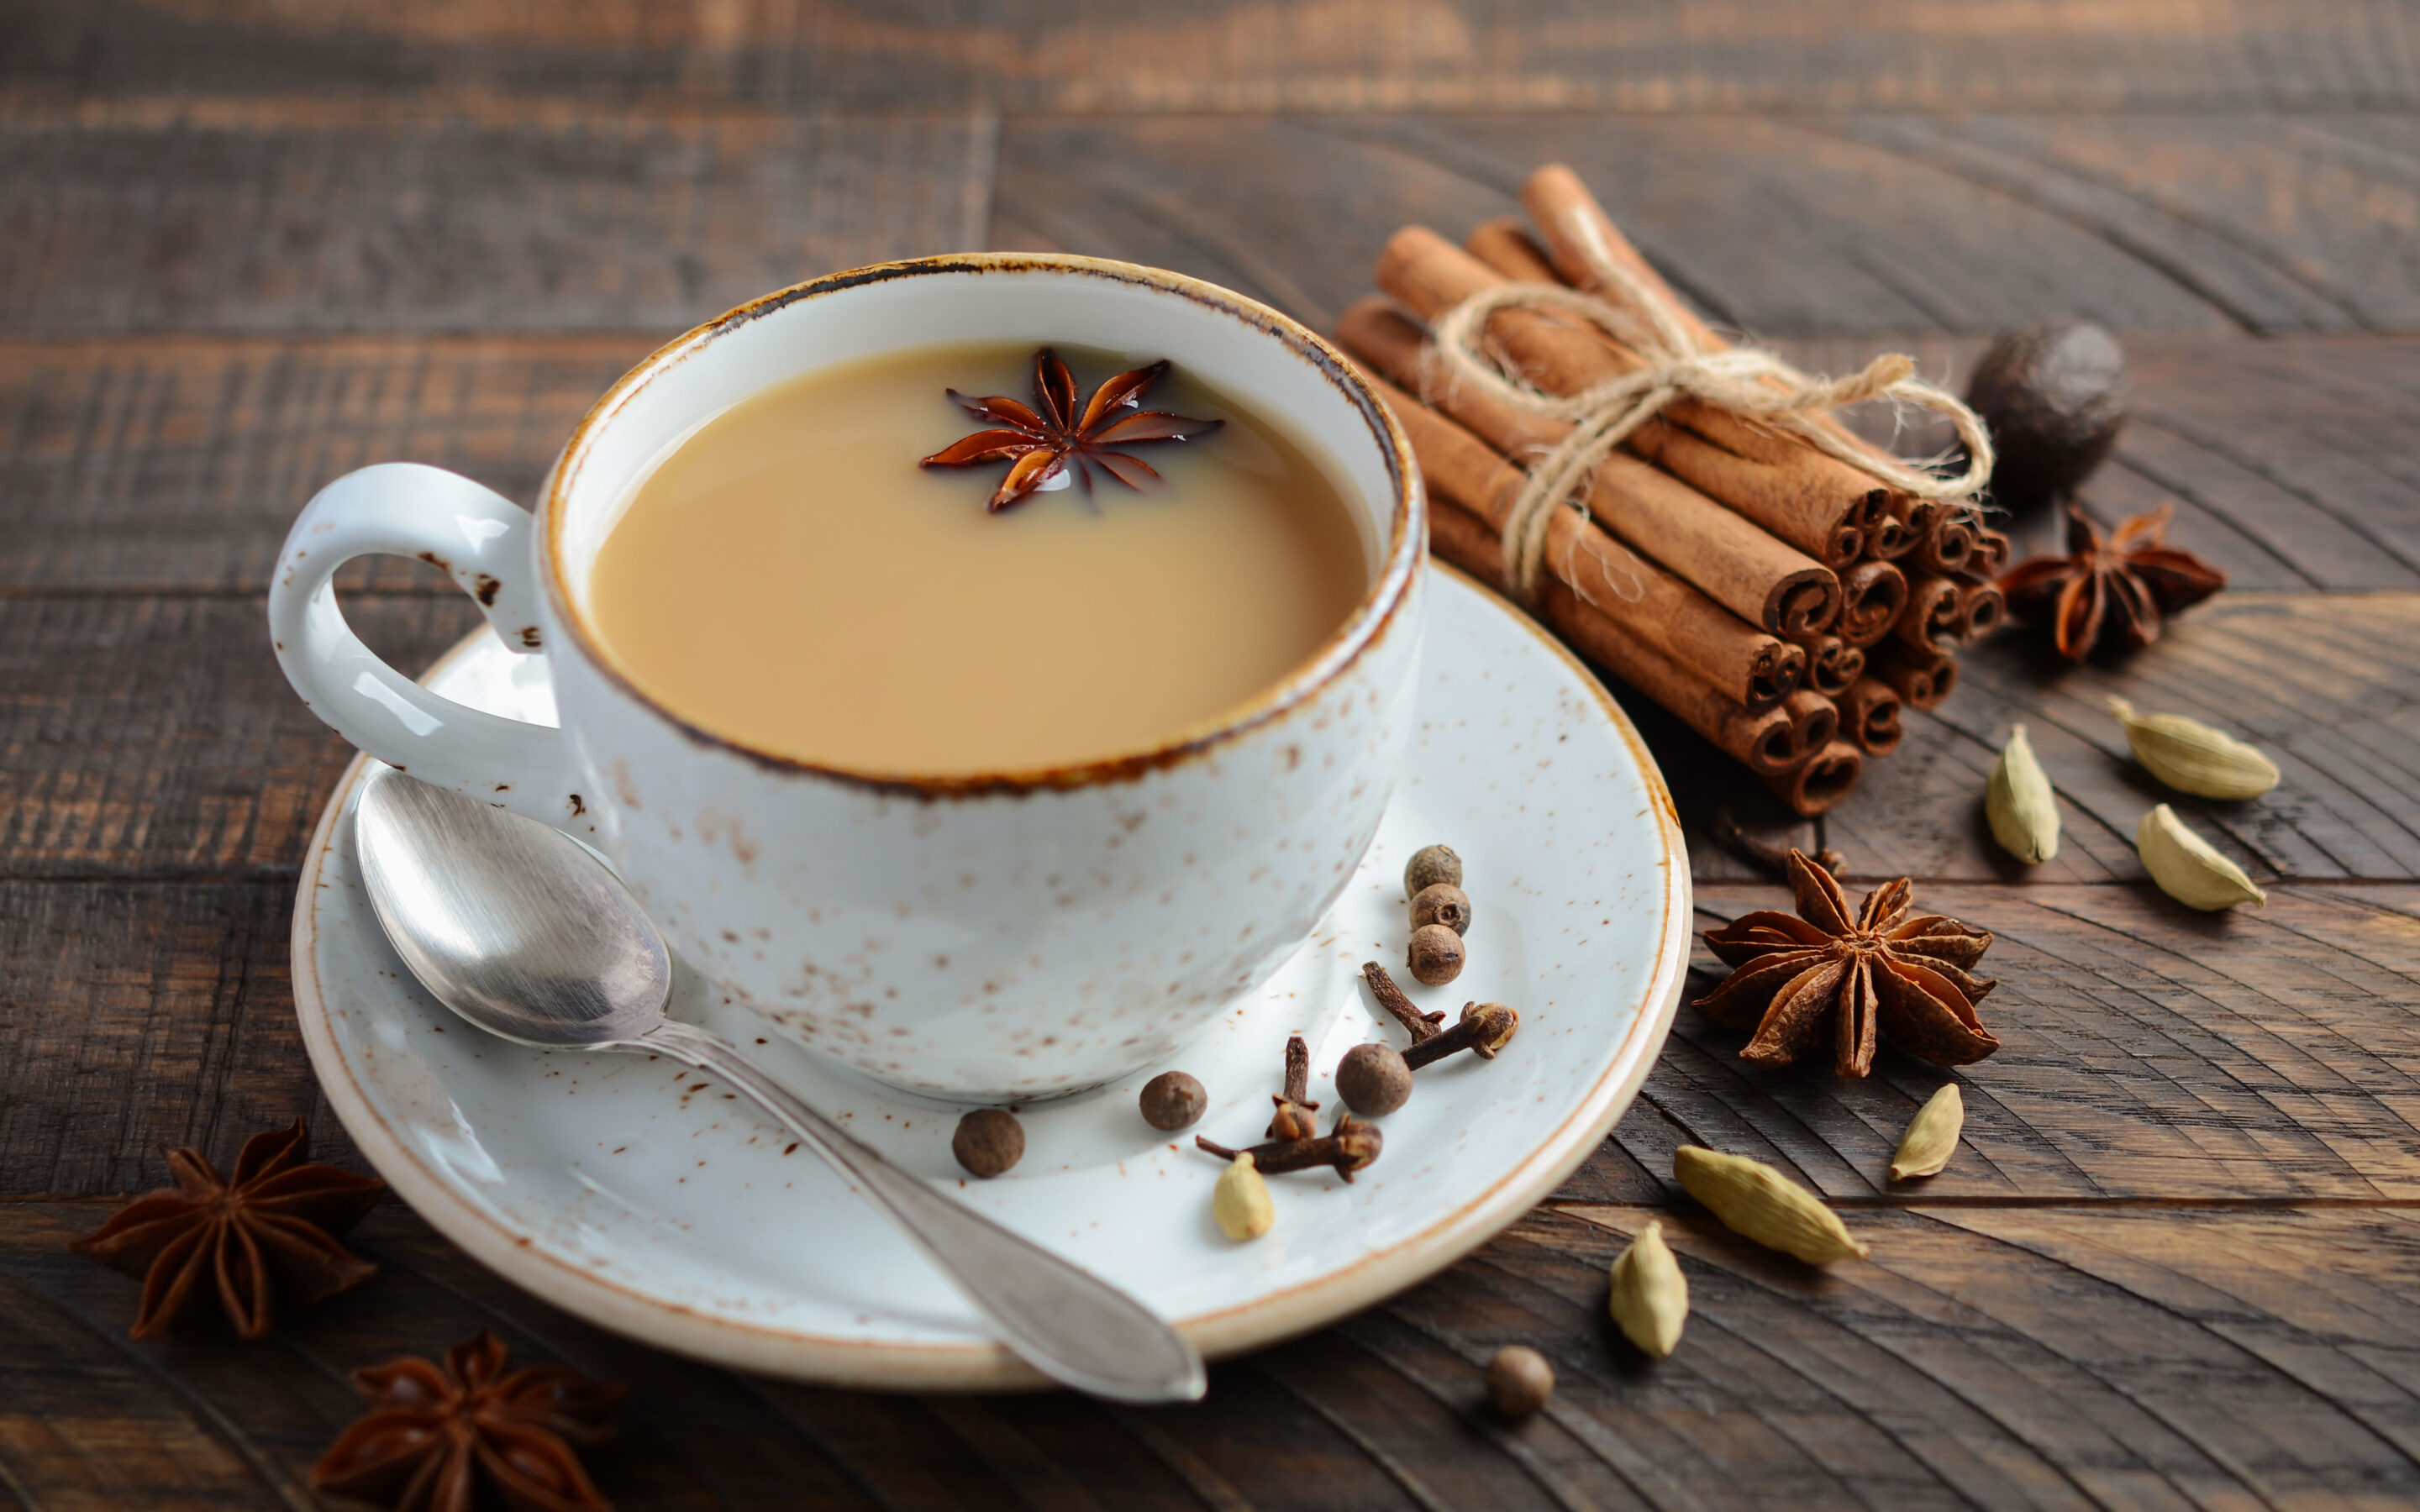 Homemade Yogi Tea | A delicious warming tea with many health benefits